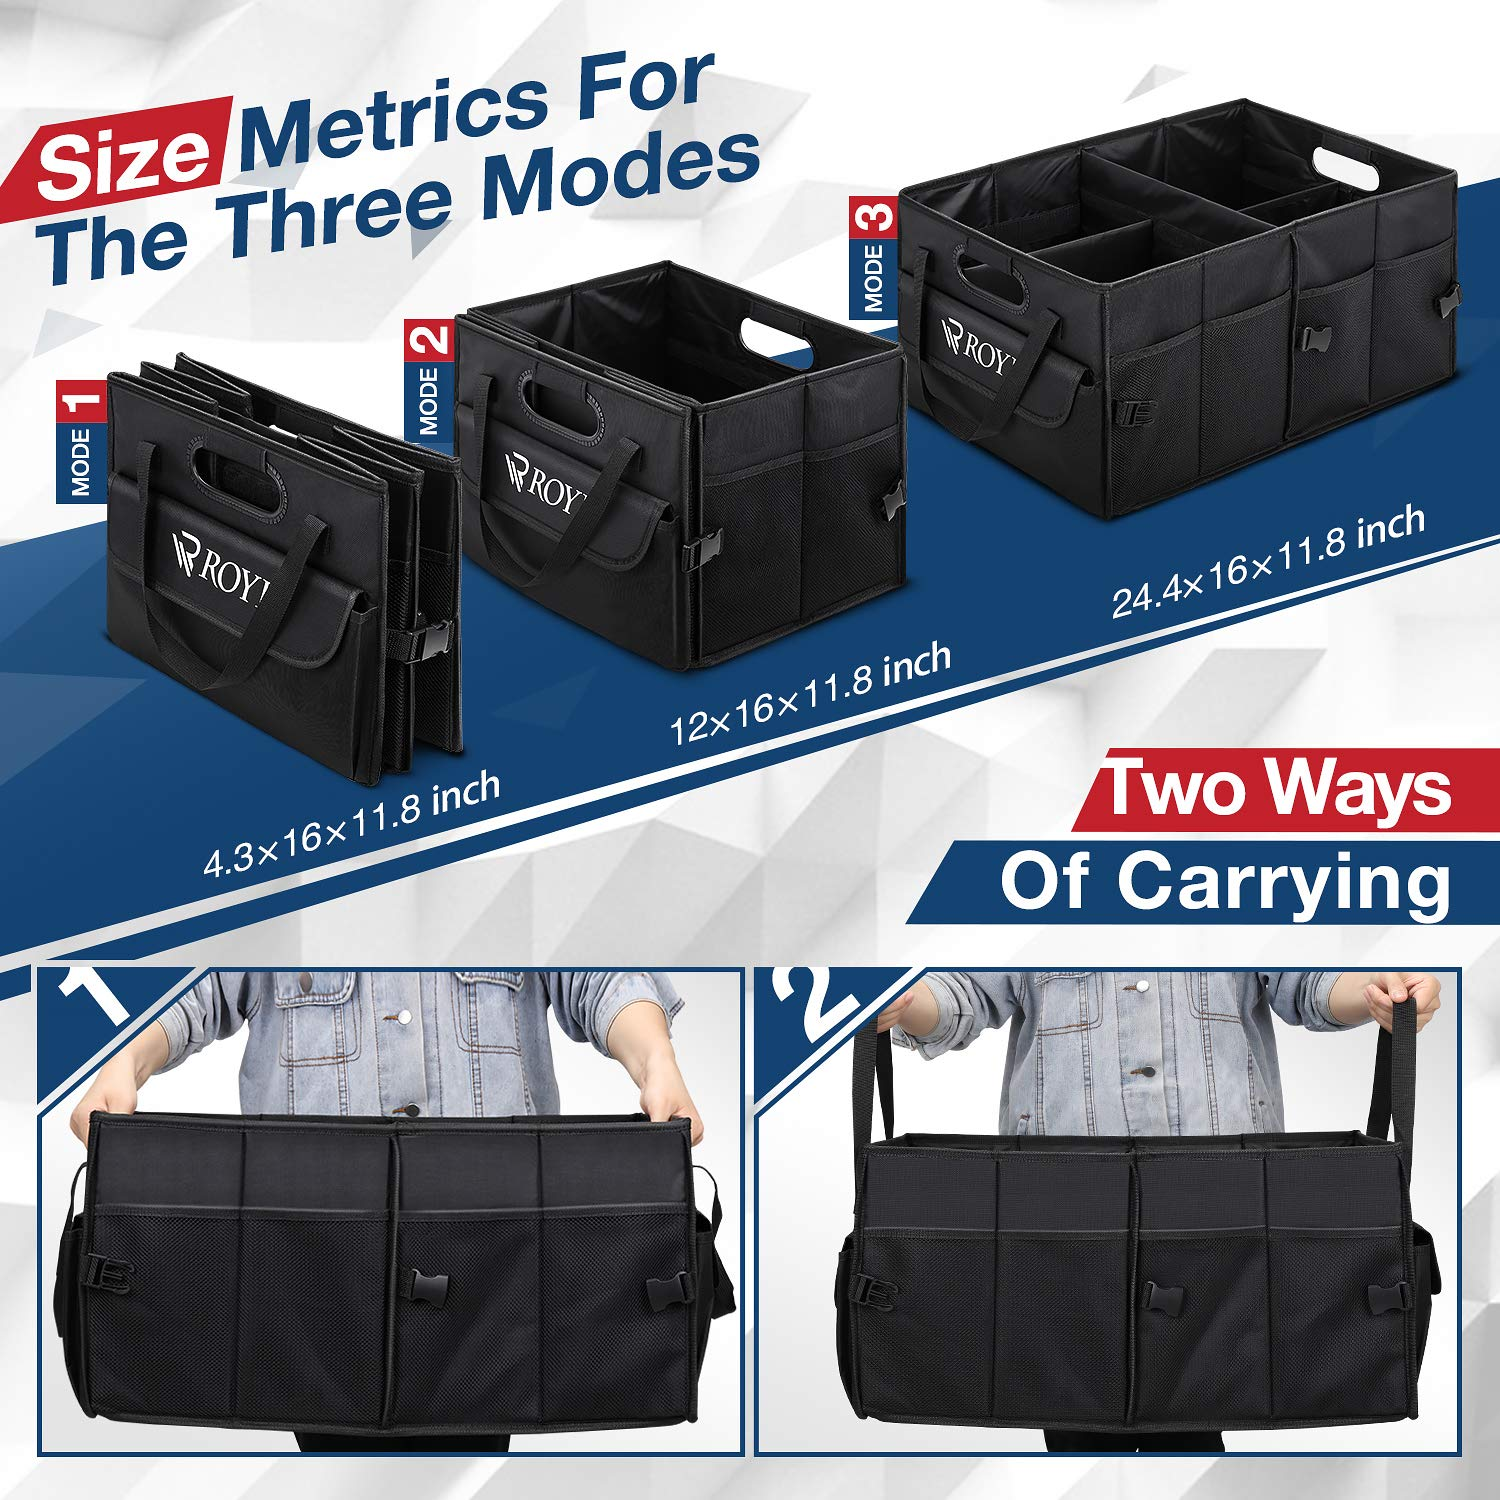 Upgraded Trunk Organizer for Car Heavy Duty Collapsible Portable Truck Bed Organizer with 4 Wider & Longer Non-Slip Bottom Strips to Prevent Sliding Bonus 1 Portable Toolkit by tomser (Image #4)